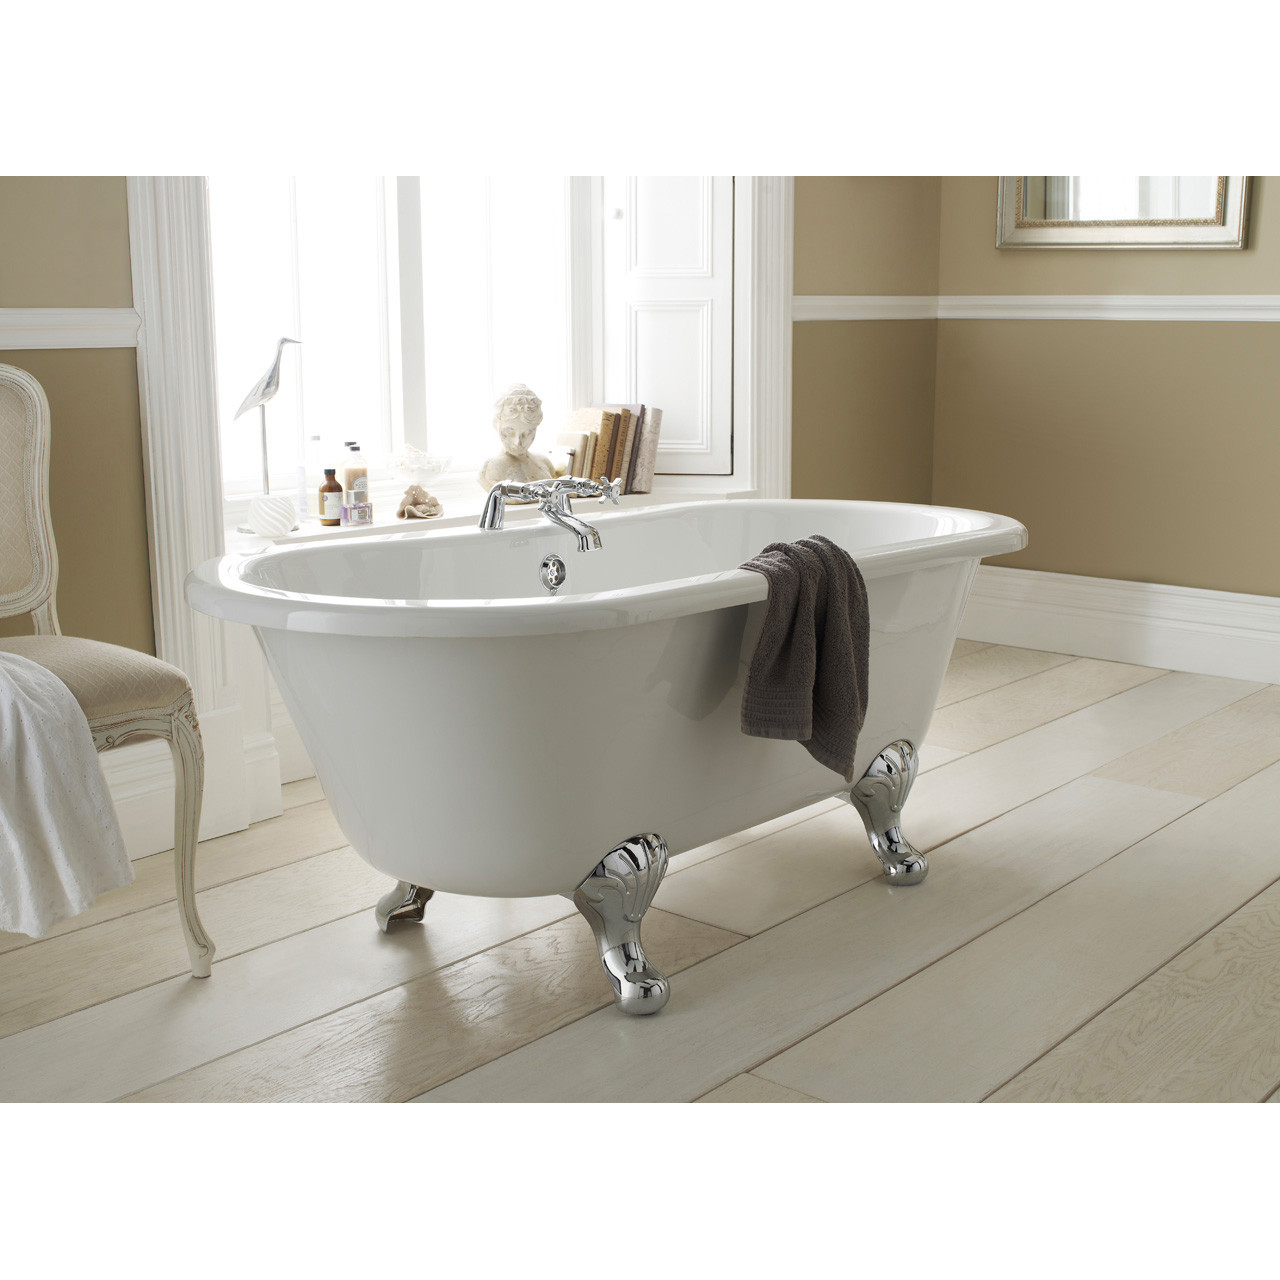 Nuie Kingsbury 1500mm Double Ended Freestanding Bath with Deacon Legs - RL1501M1